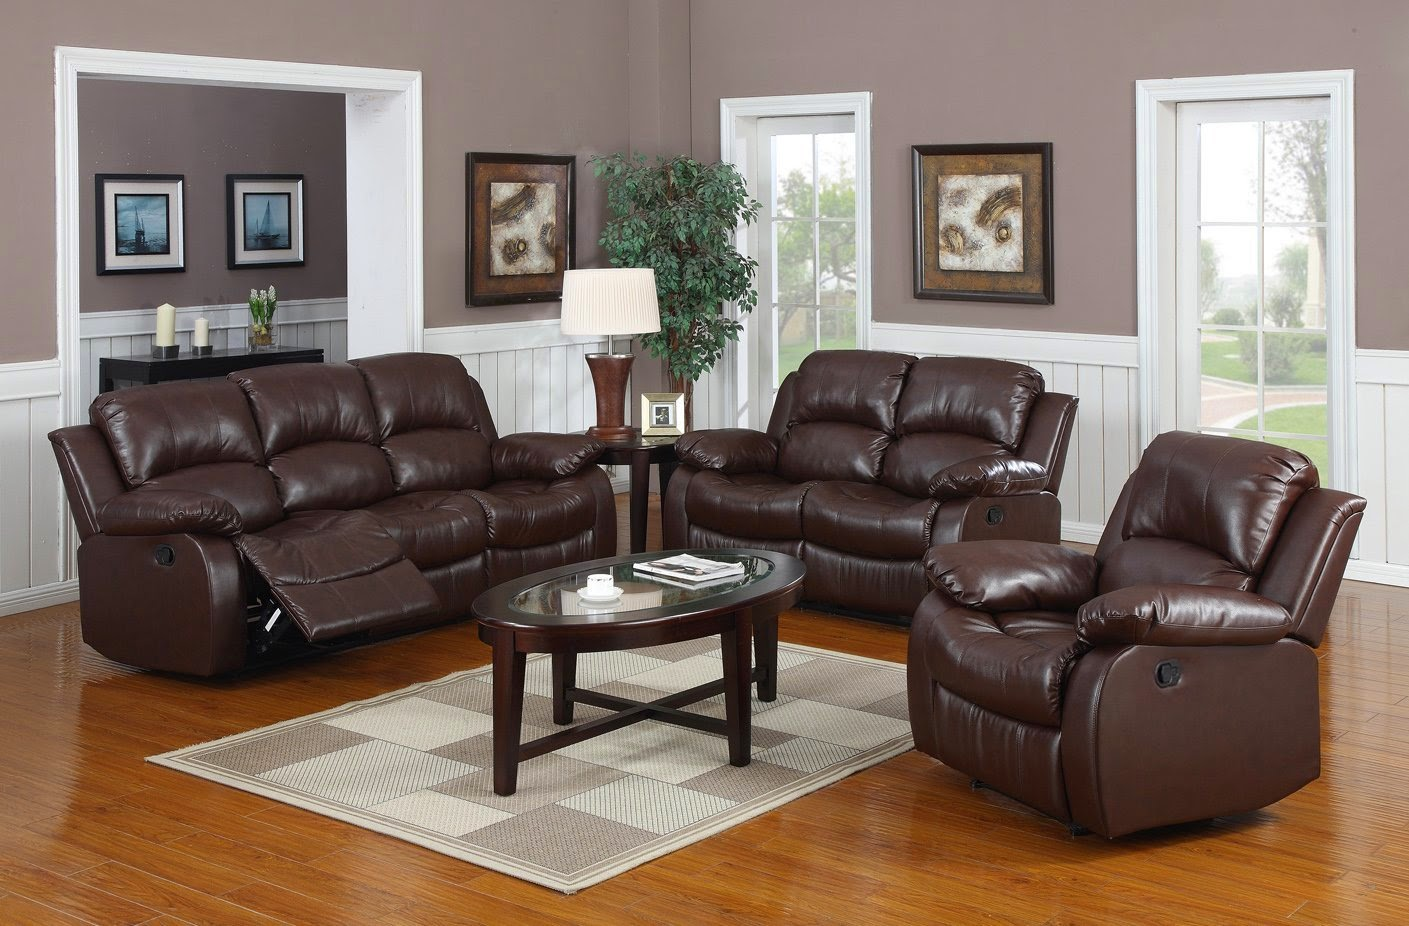 The Best Reclining Leather Sofa Reviews: Leather Recliner